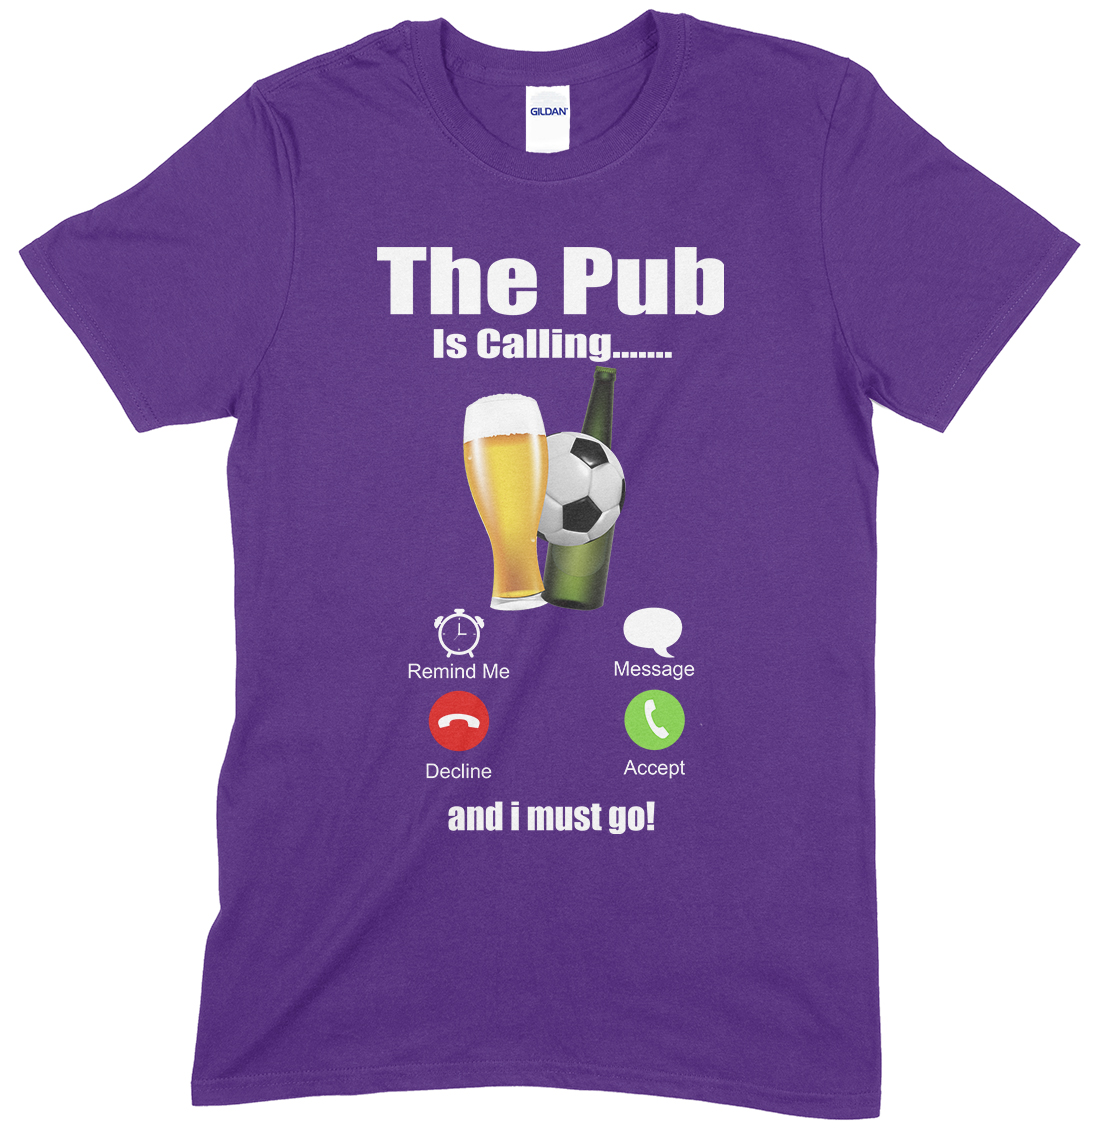 Adults Novelty Funny Unisex T Shirt,The Pub is Calling & I Must Go…(Football & Beer)